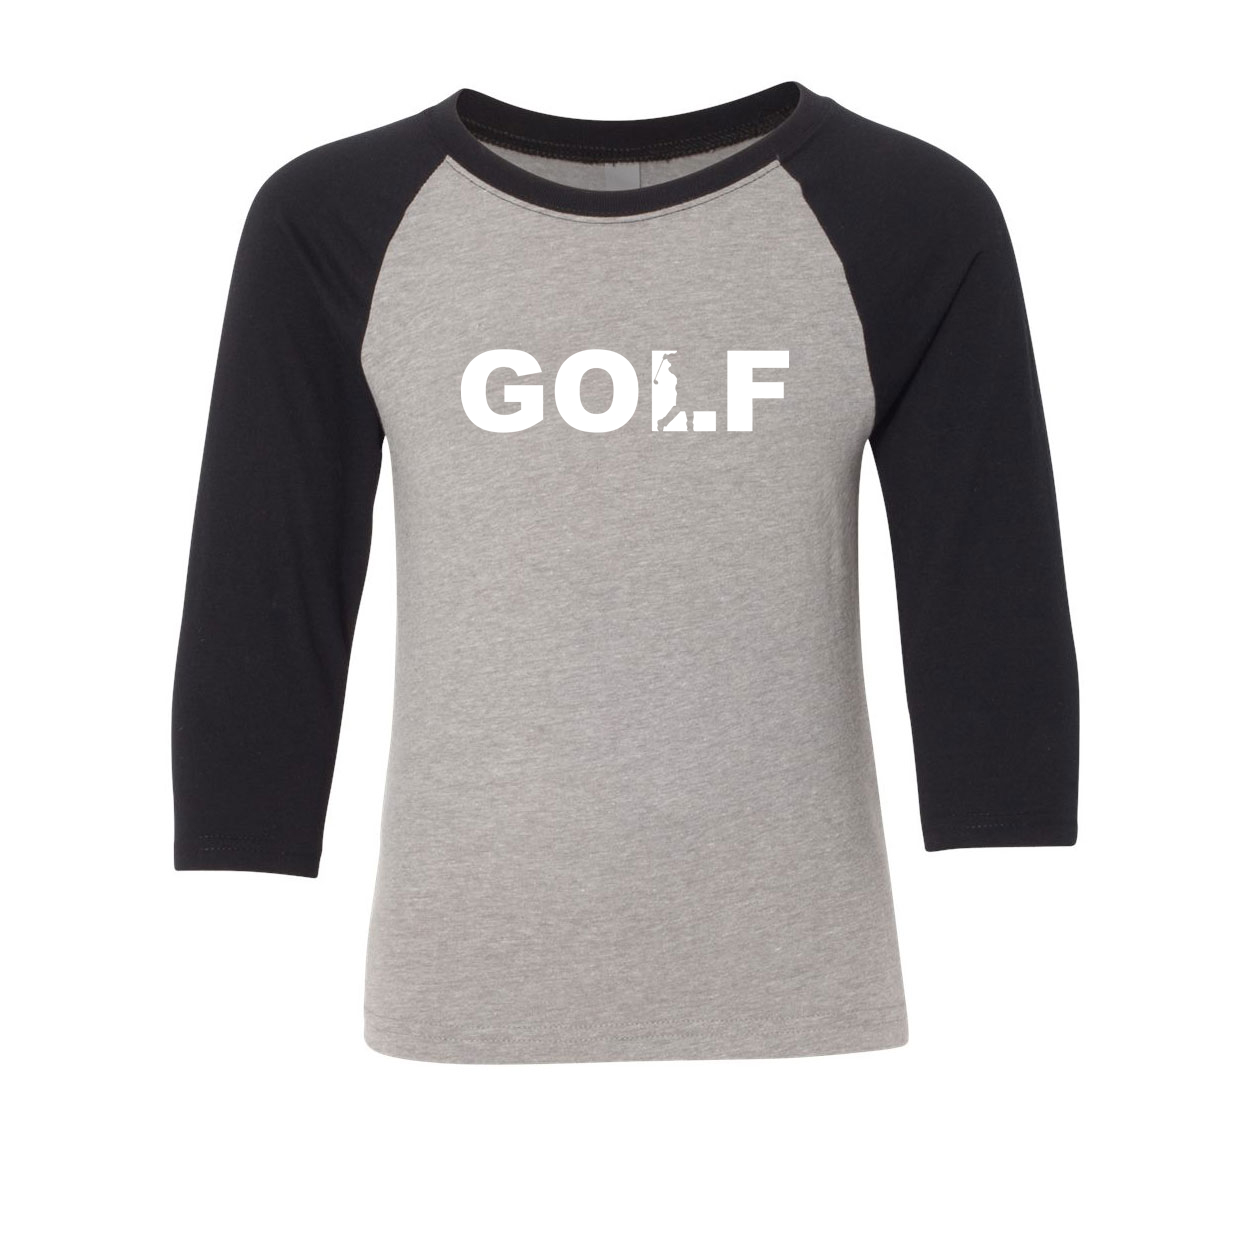 Golf Swing Logo Classic Youth Premium Raglan Shirt Gray/Black (White Logo)